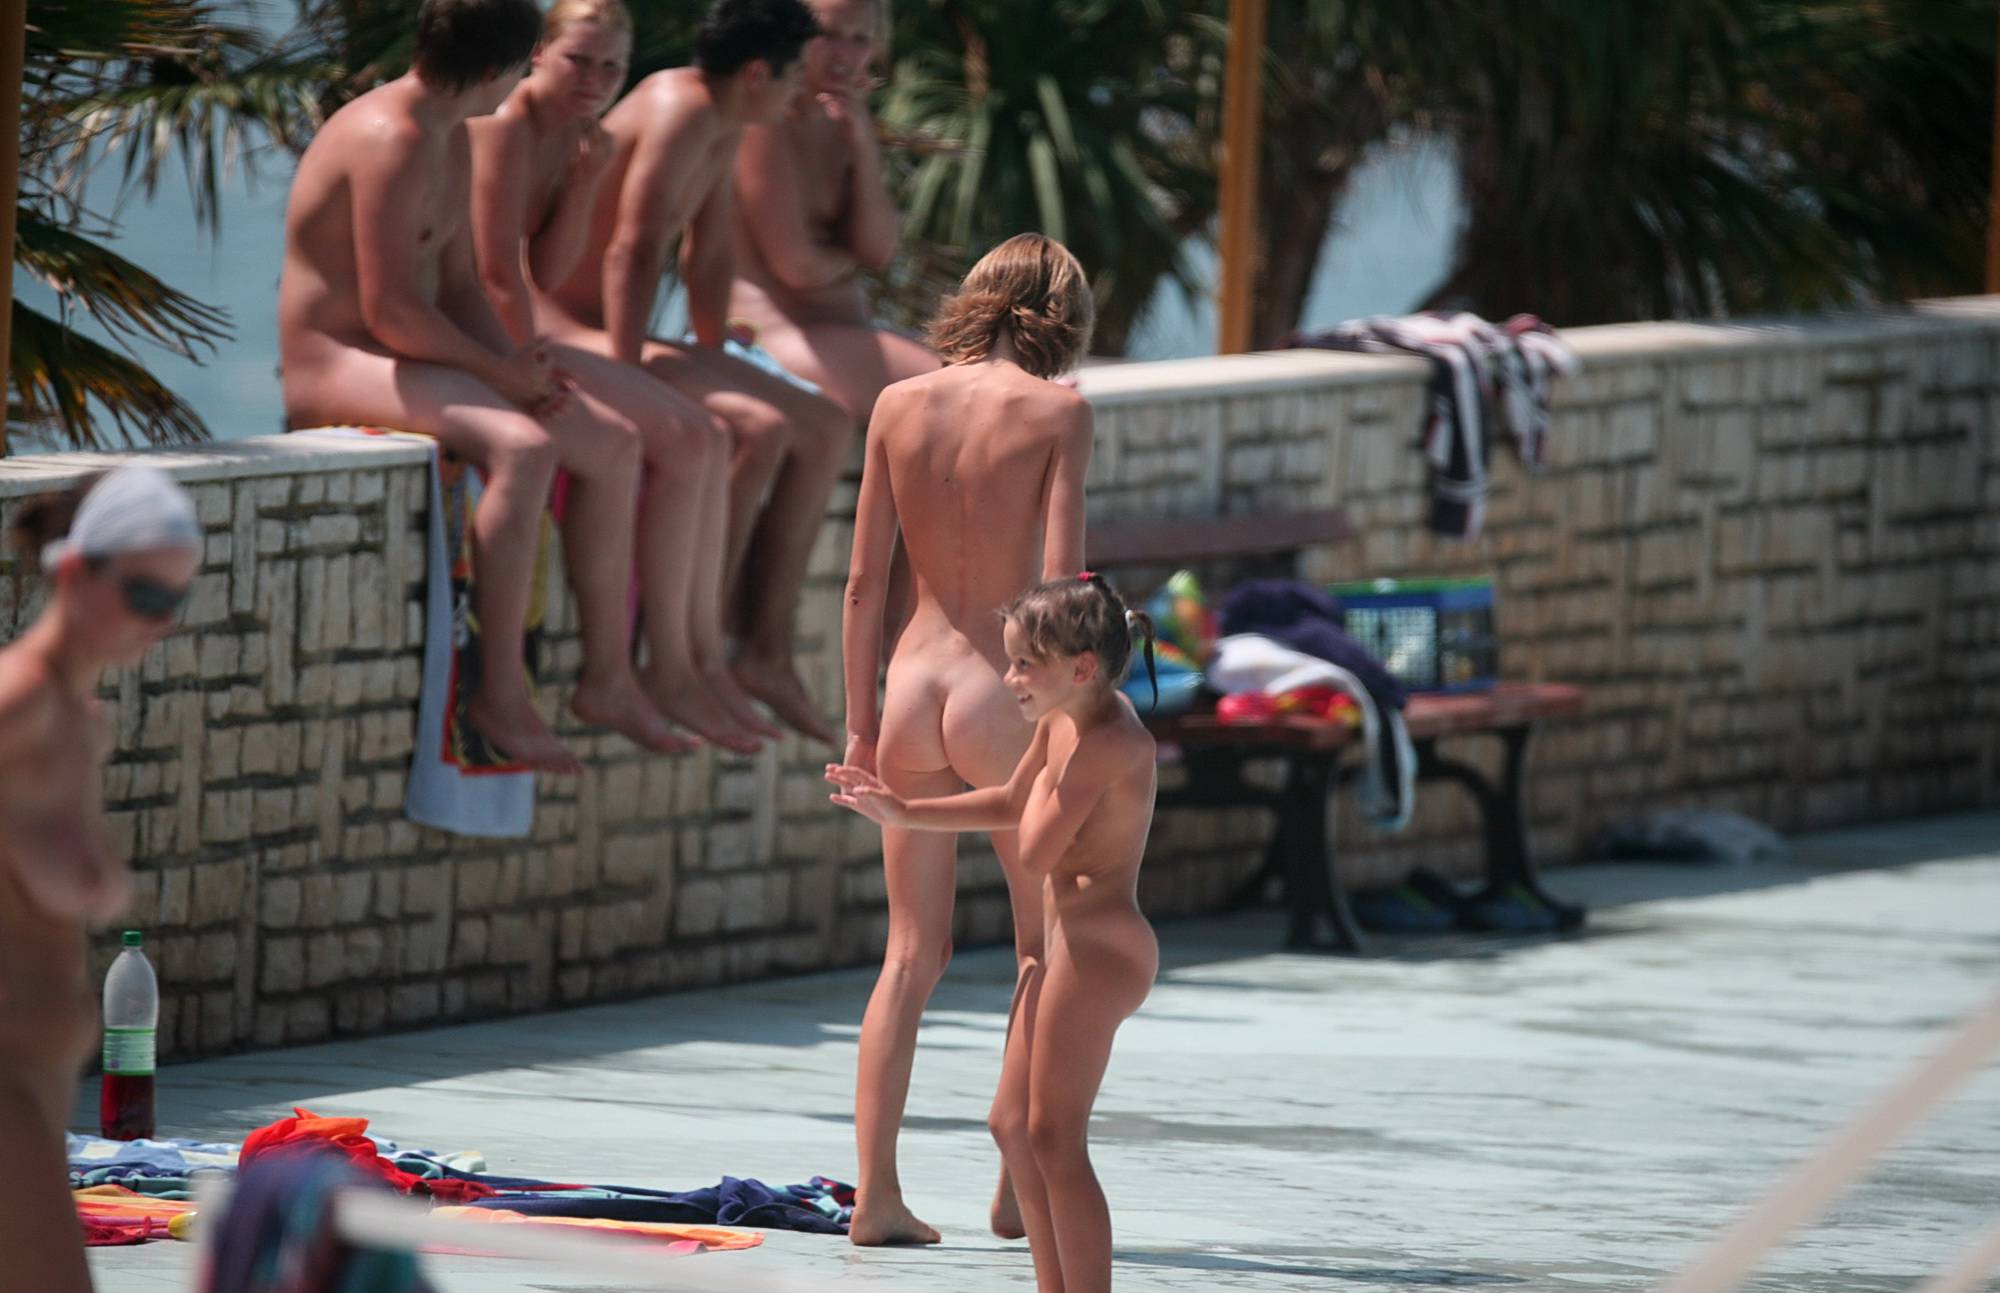 Nudist Pictures The Nudist Ledge Group - 2